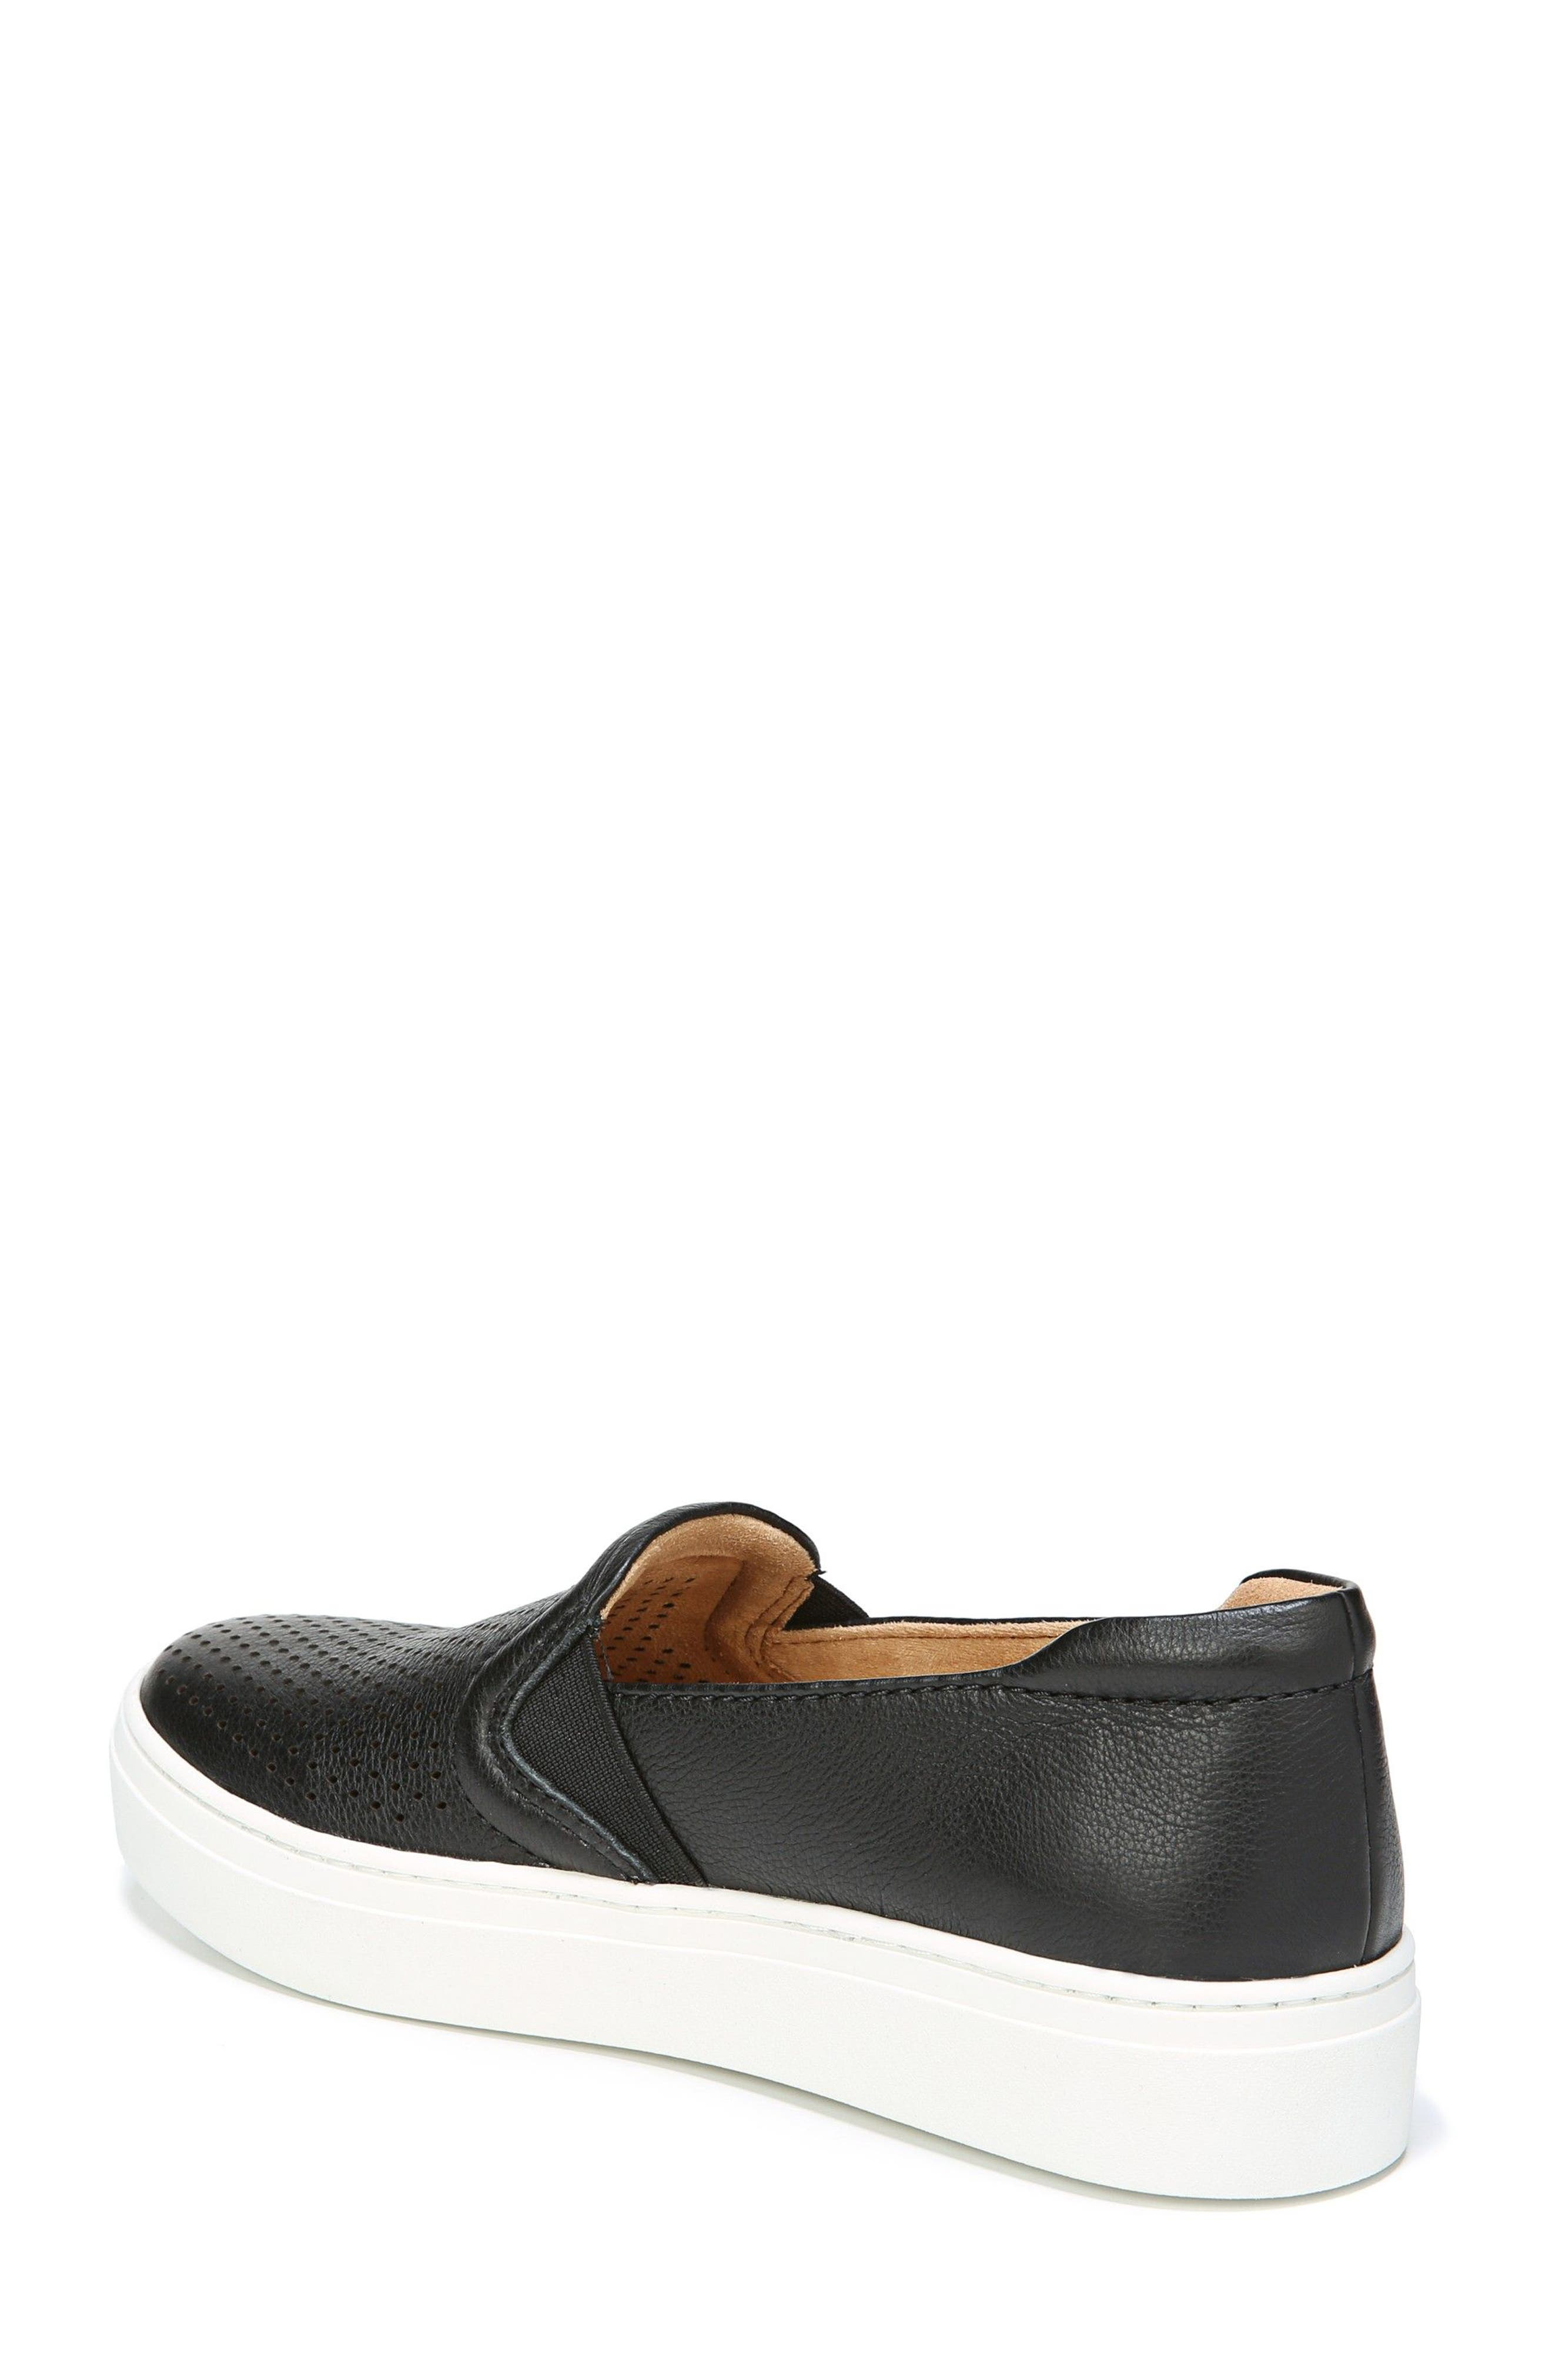 Carly Slip-On Sneaker,                             Alternate thumbnail 2, color,                             BLACK PEBBLED LEATHER